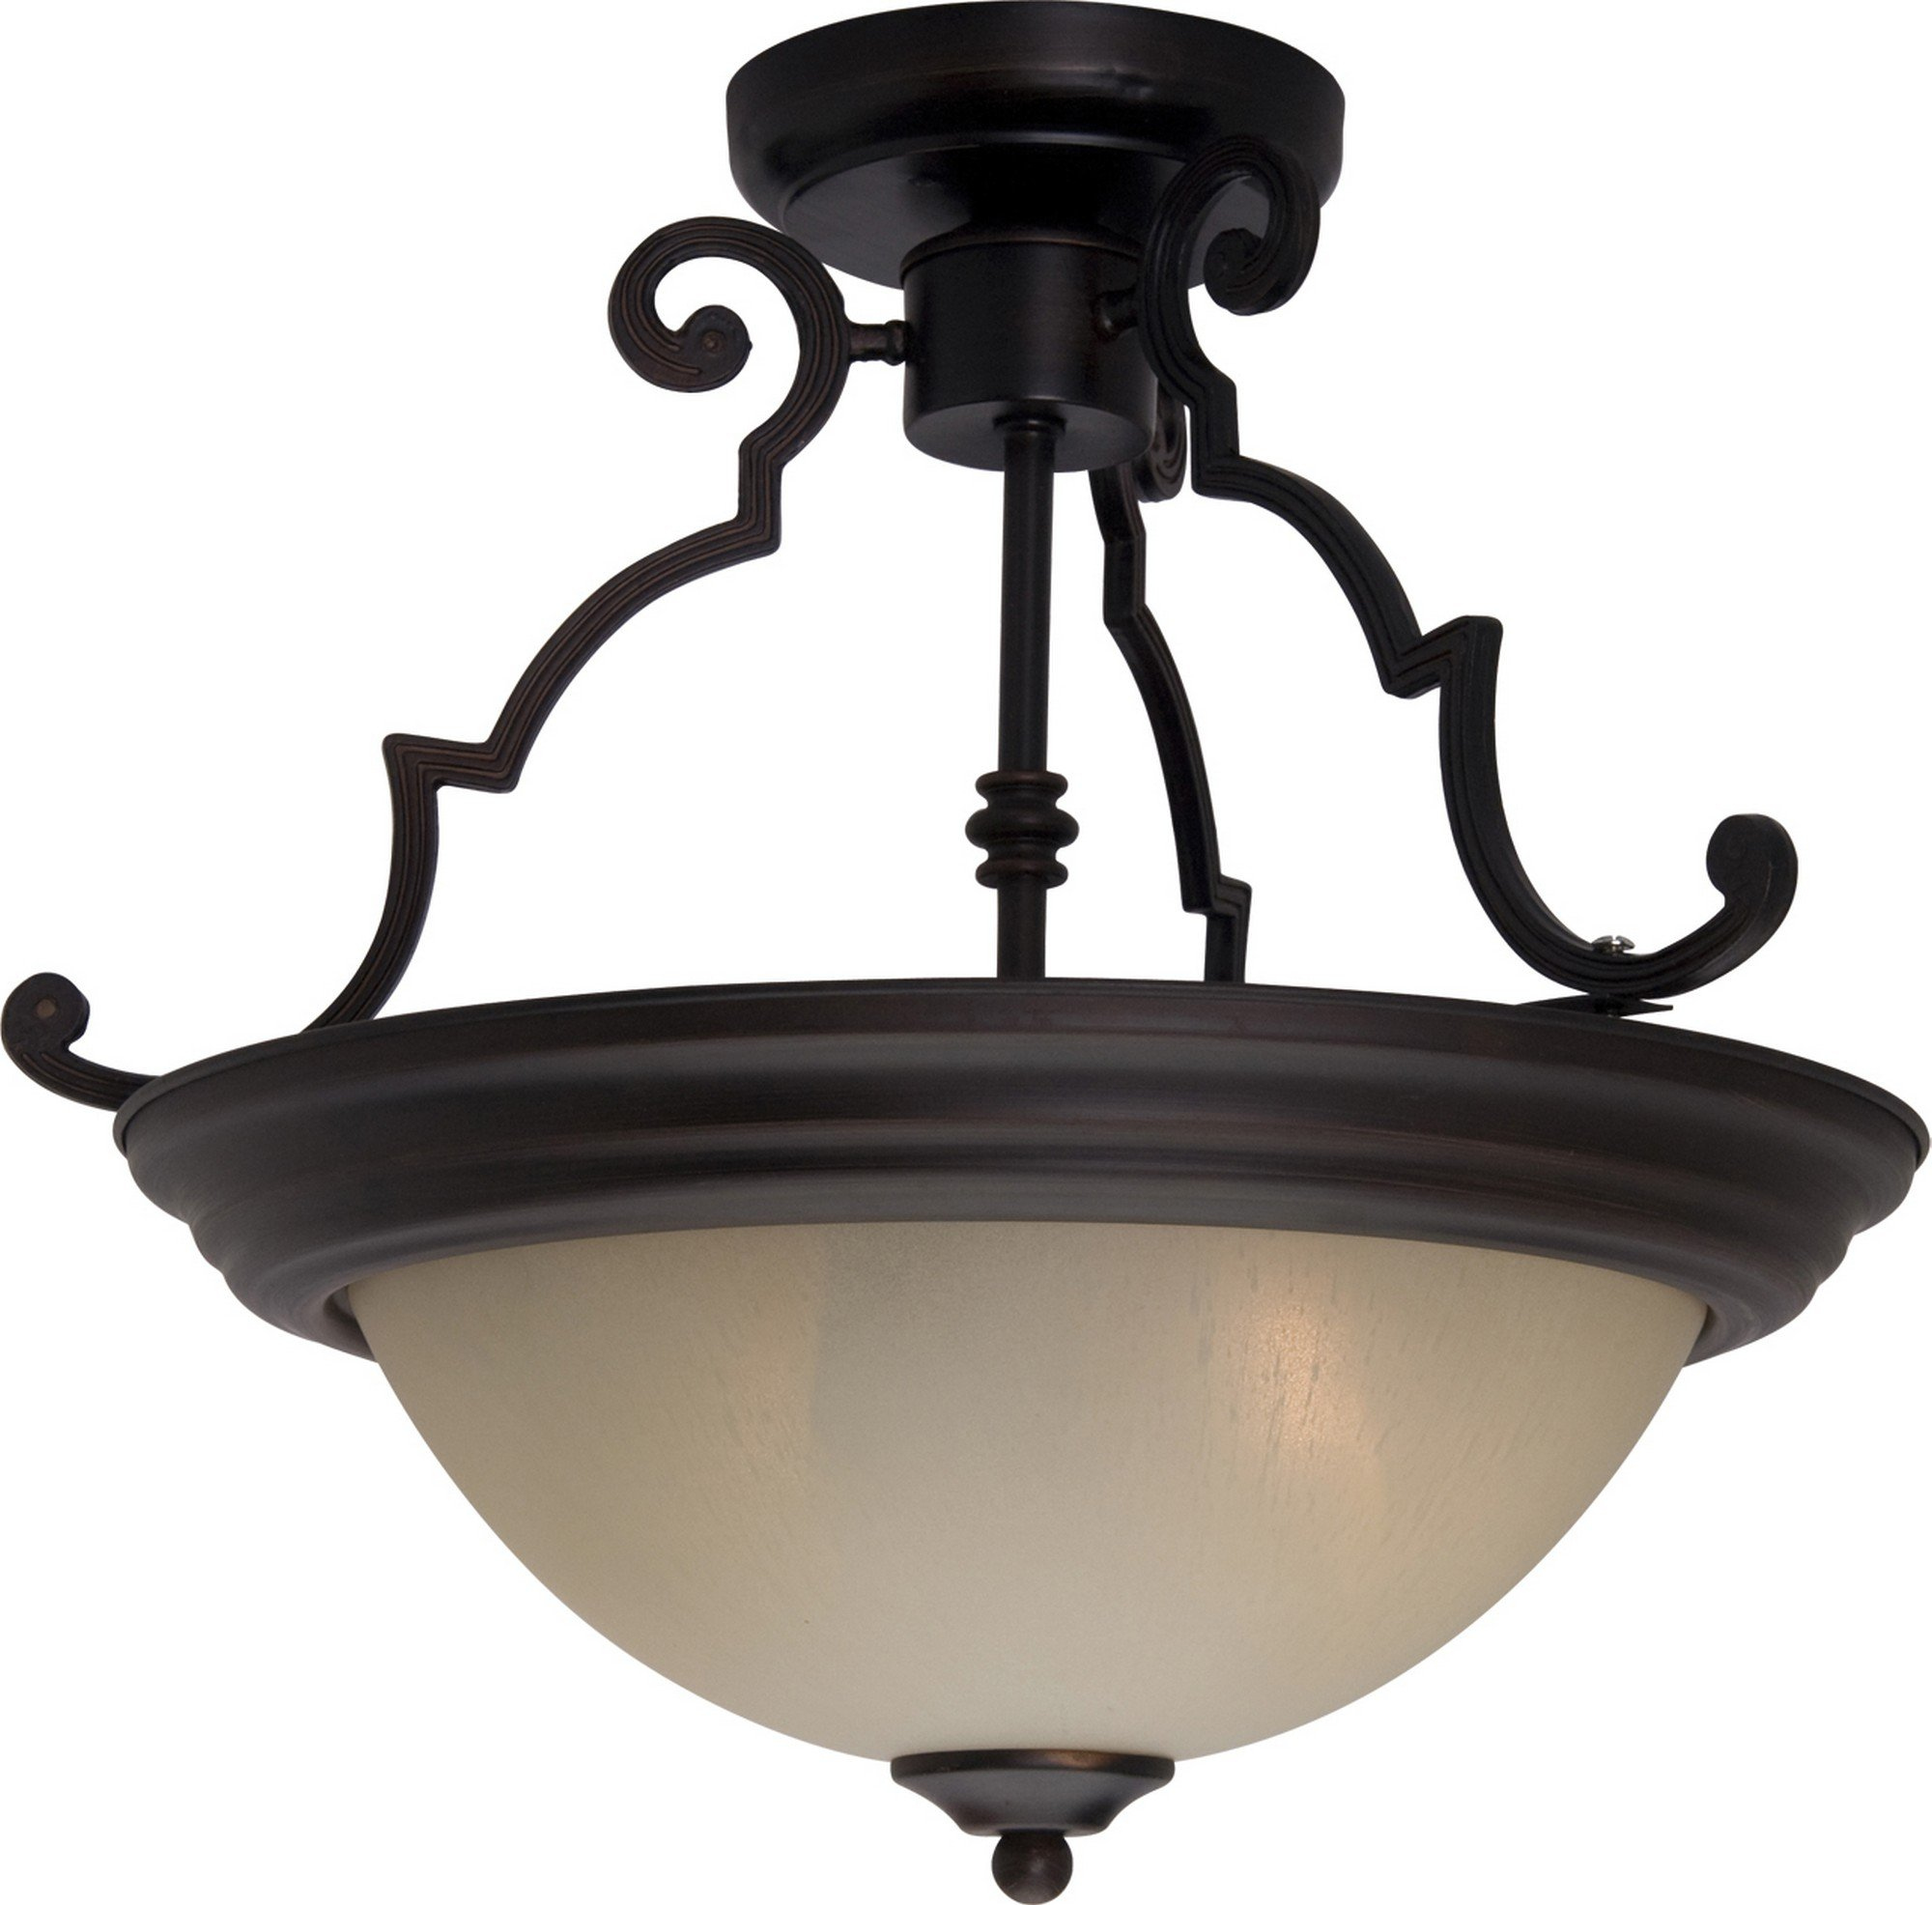 Maxim 5843WSOI Essentials 2-Light Semi-Flush Mount, Oil Rubbed Bronze Finish, Wilshire Glass, MB Incandescent Incandescent Bulb , 60W Max., Dry Safety Rating, Standard Dimmable, Linen Fabric Shade Material, Rated Lumens